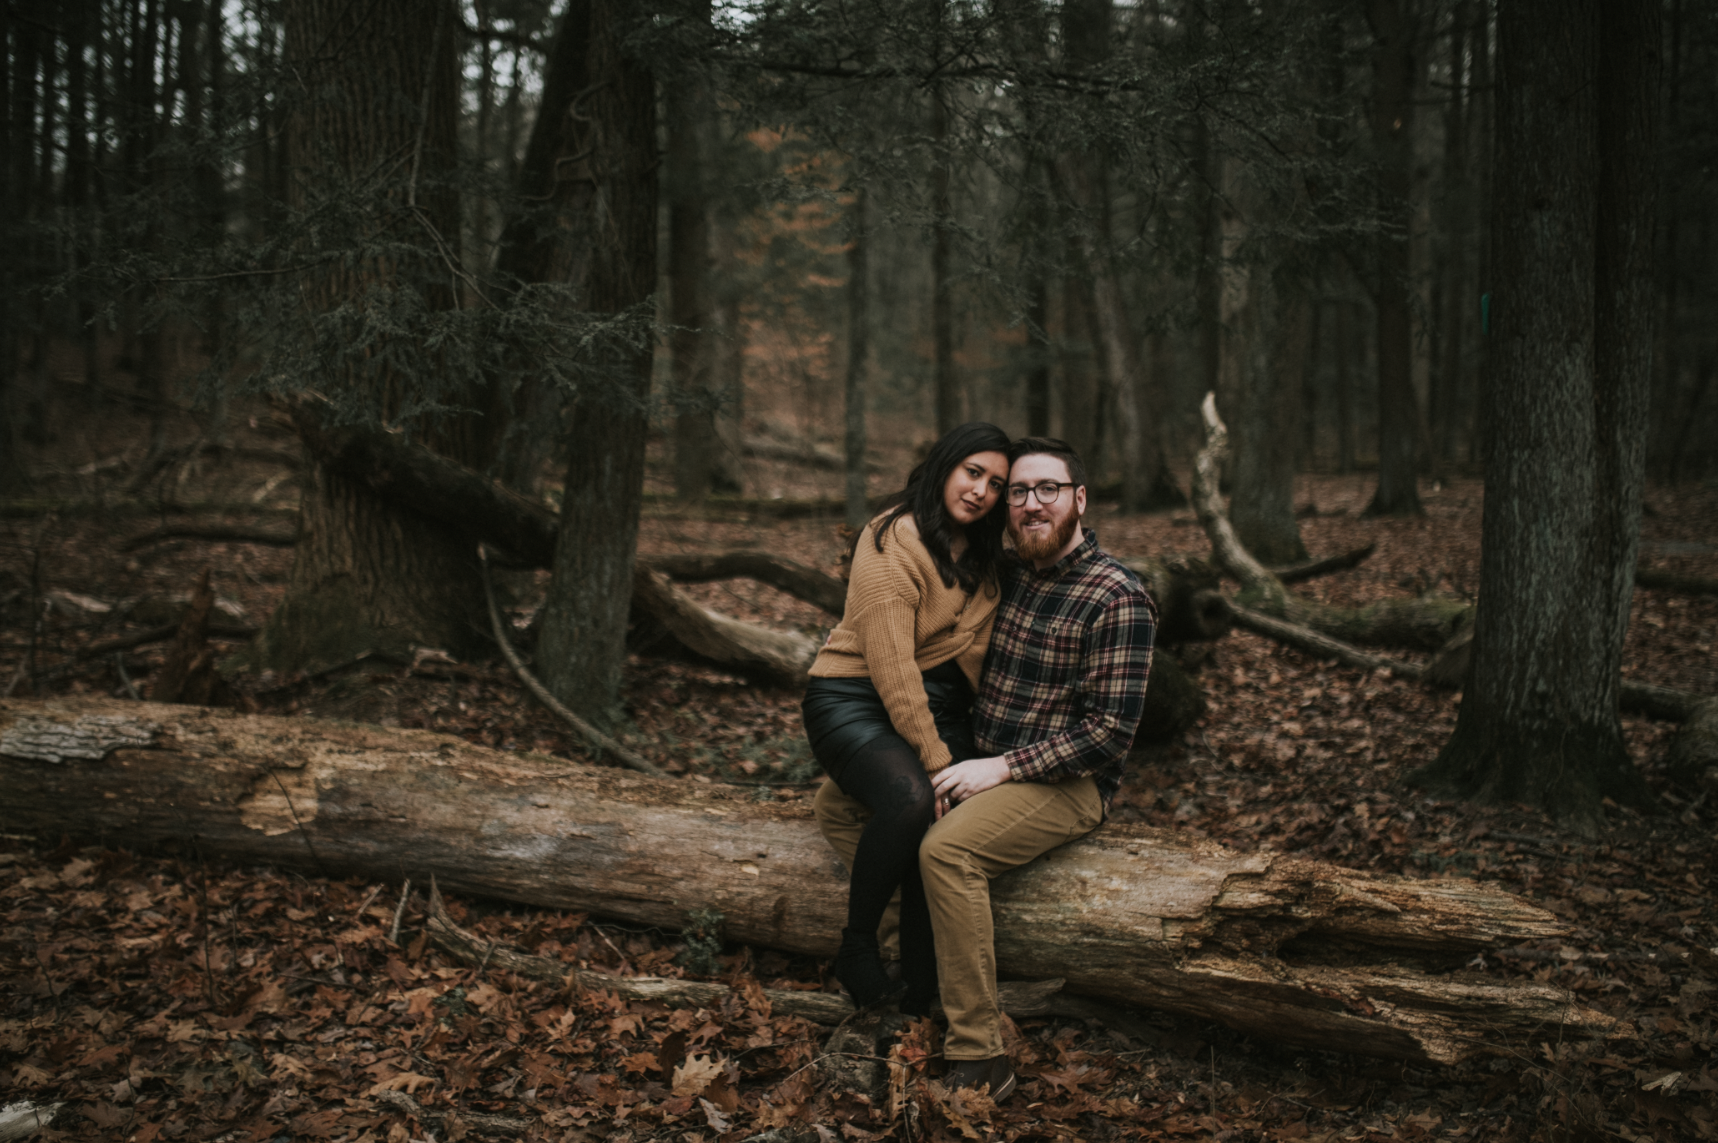 matt-natalia-winter-woods-engagement-session-pennsylvania-wedding-photographer-13